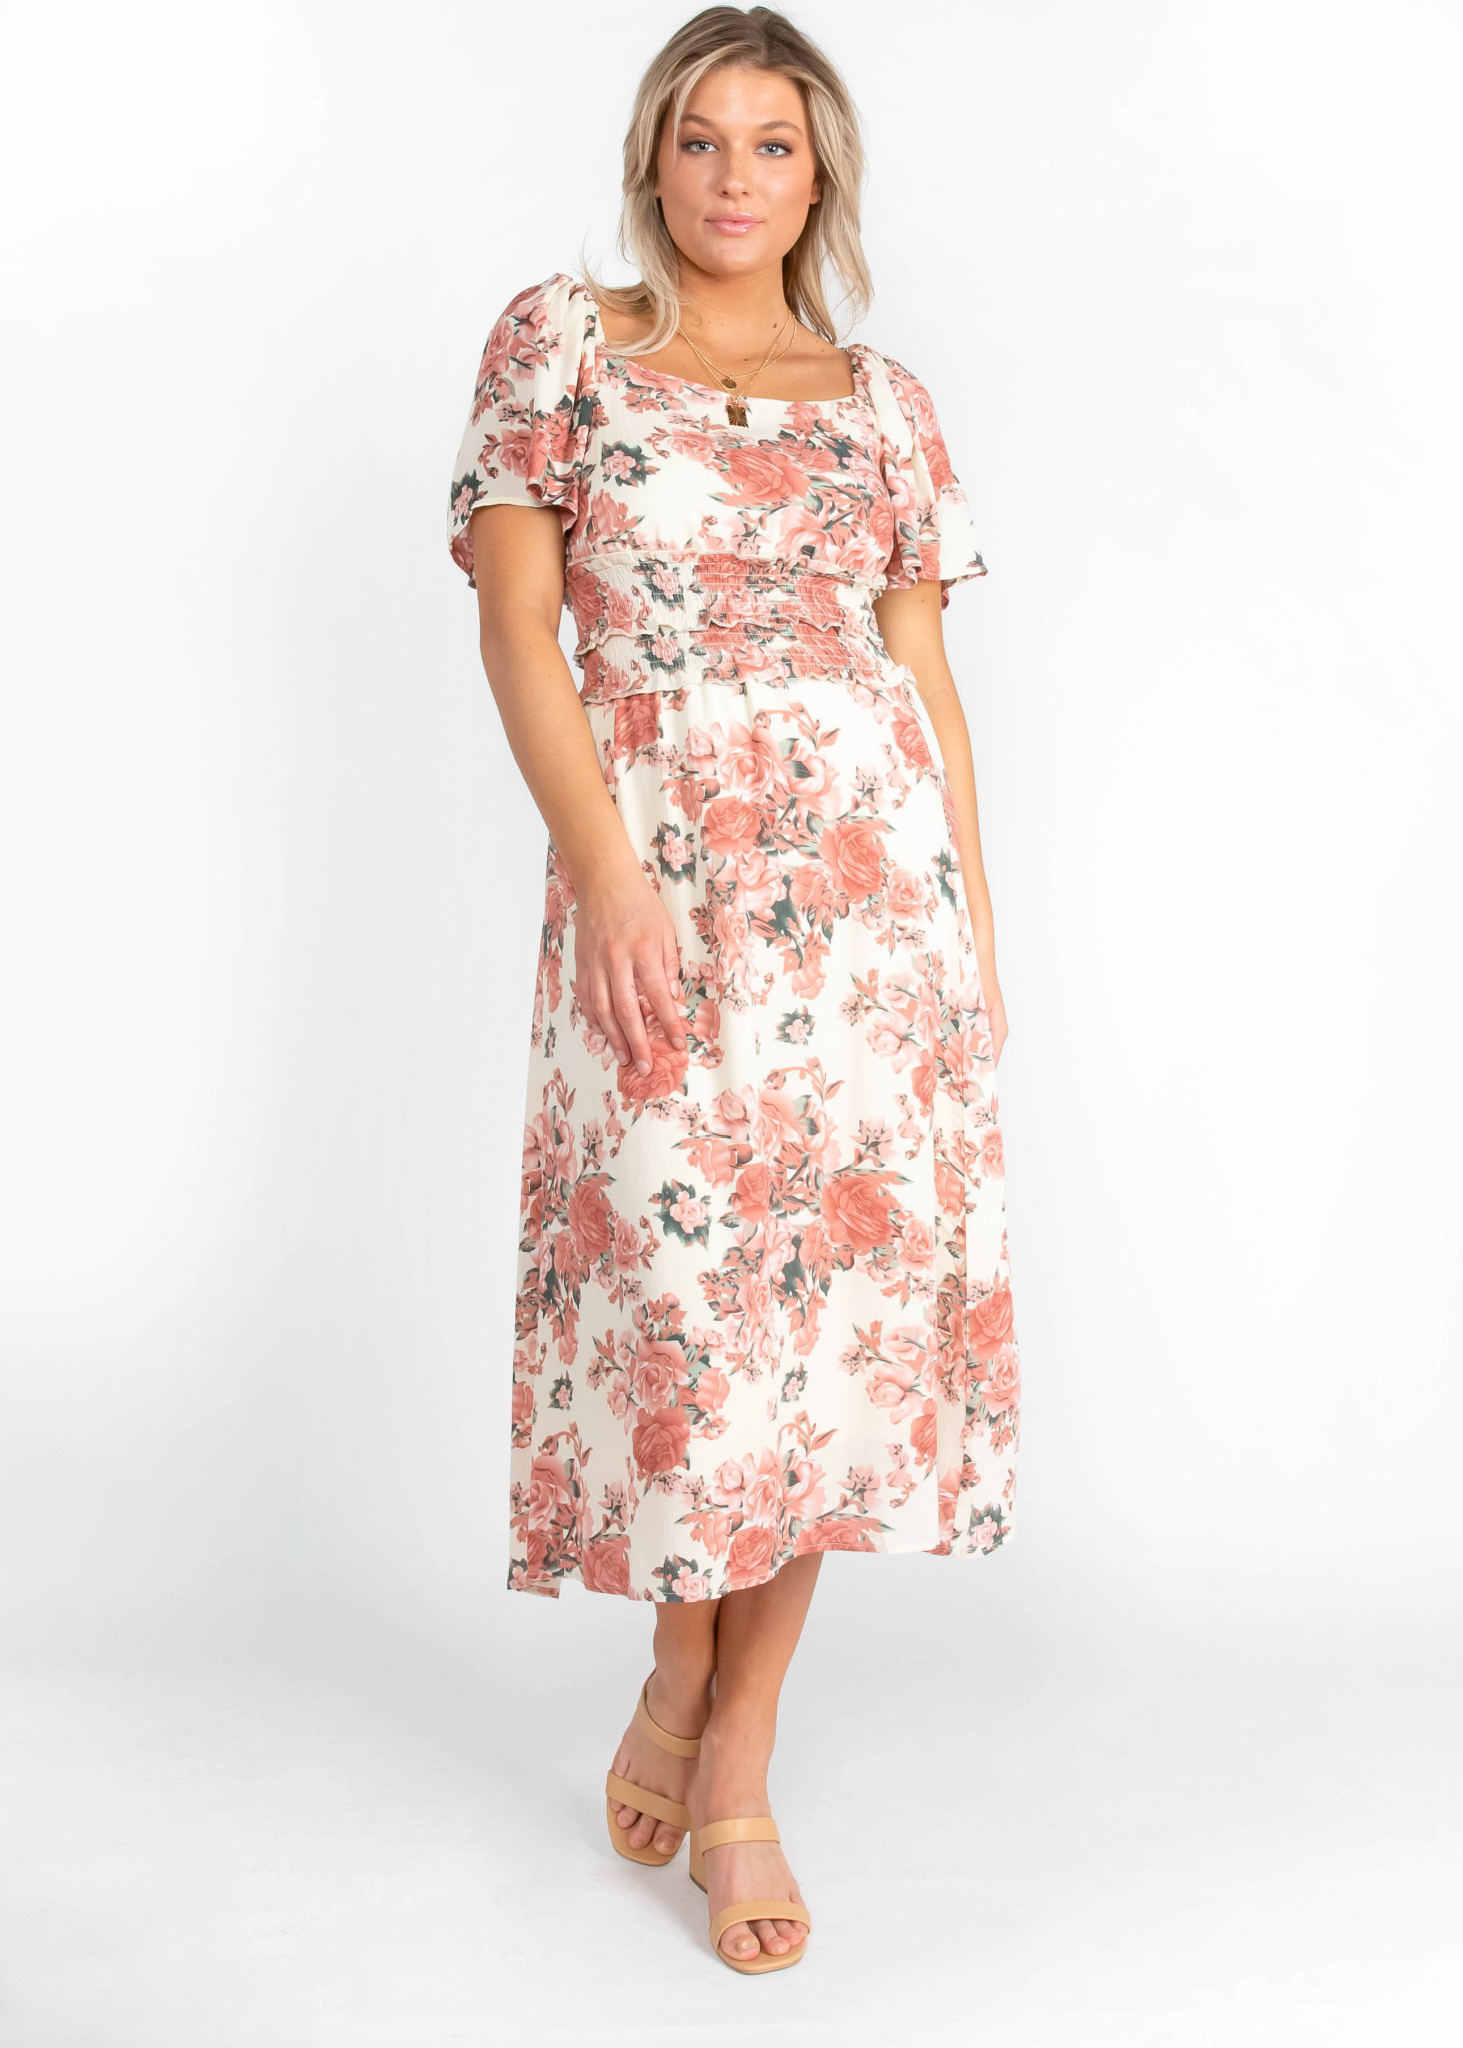 SEEKING SPRING FLORAL DRESS